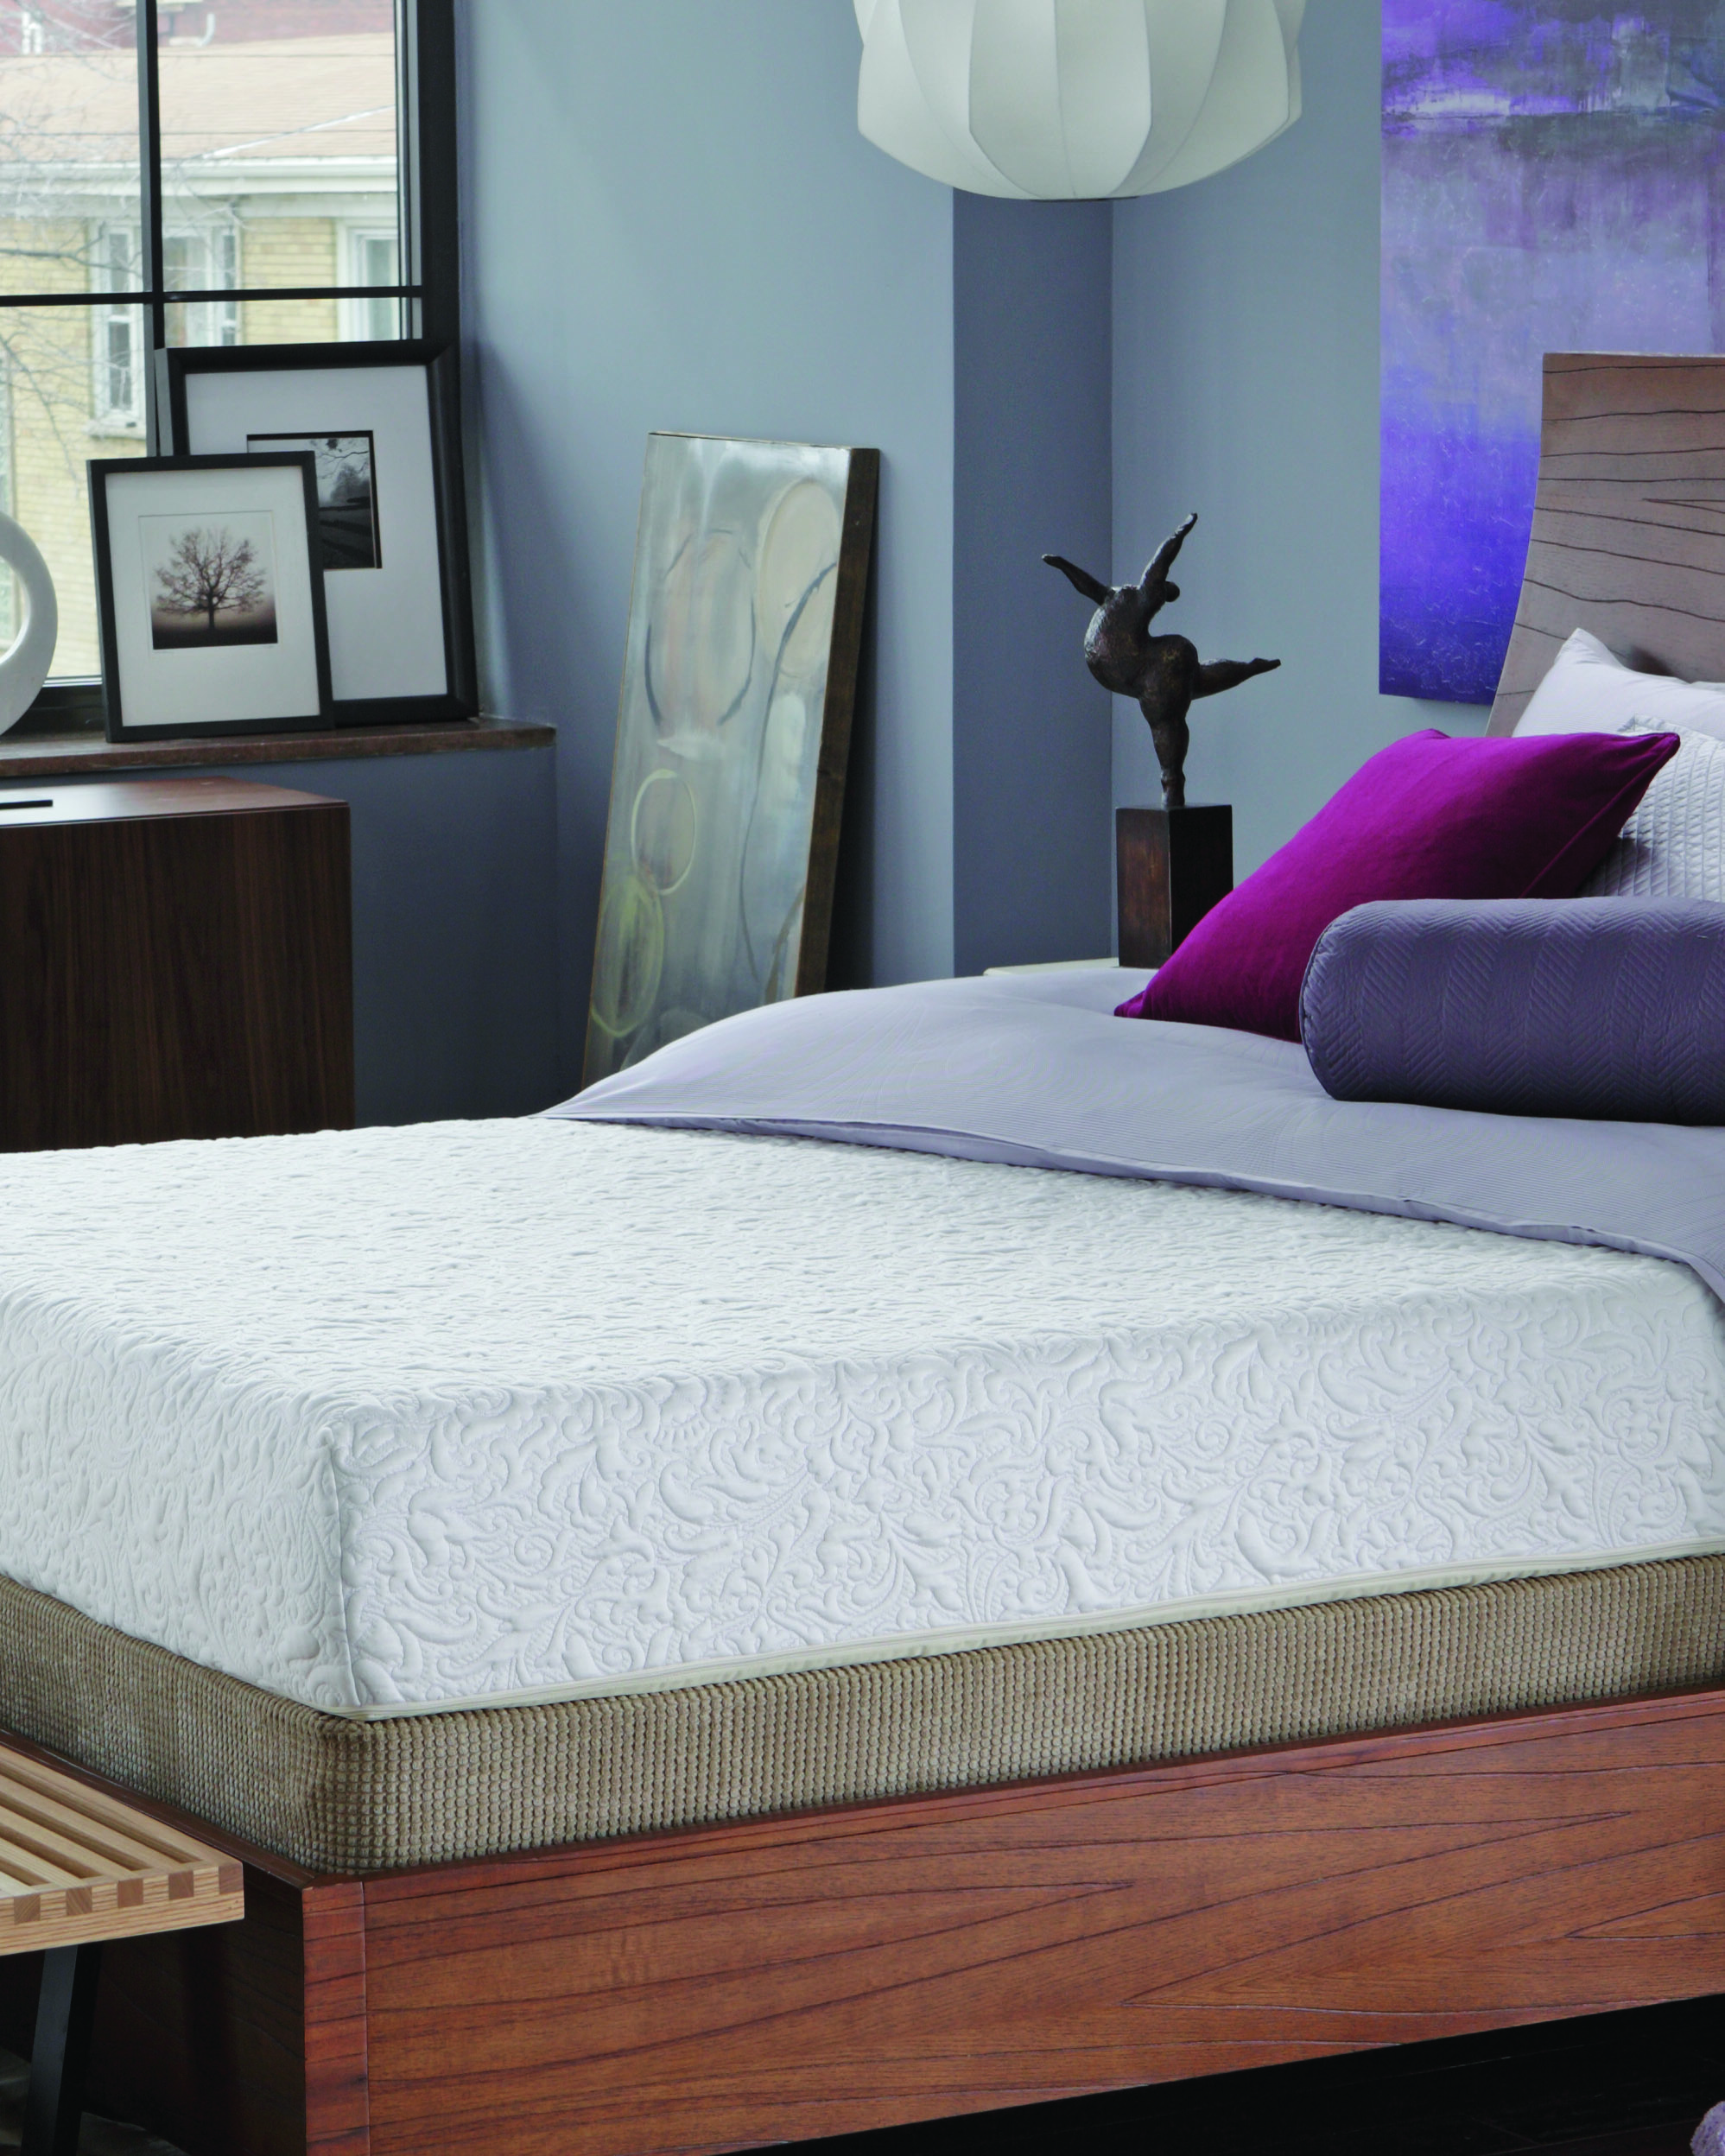 Used Stearns And Foster Mattresses Serta iComfort Prodigy - Mattress Reviews - GoodBed.com